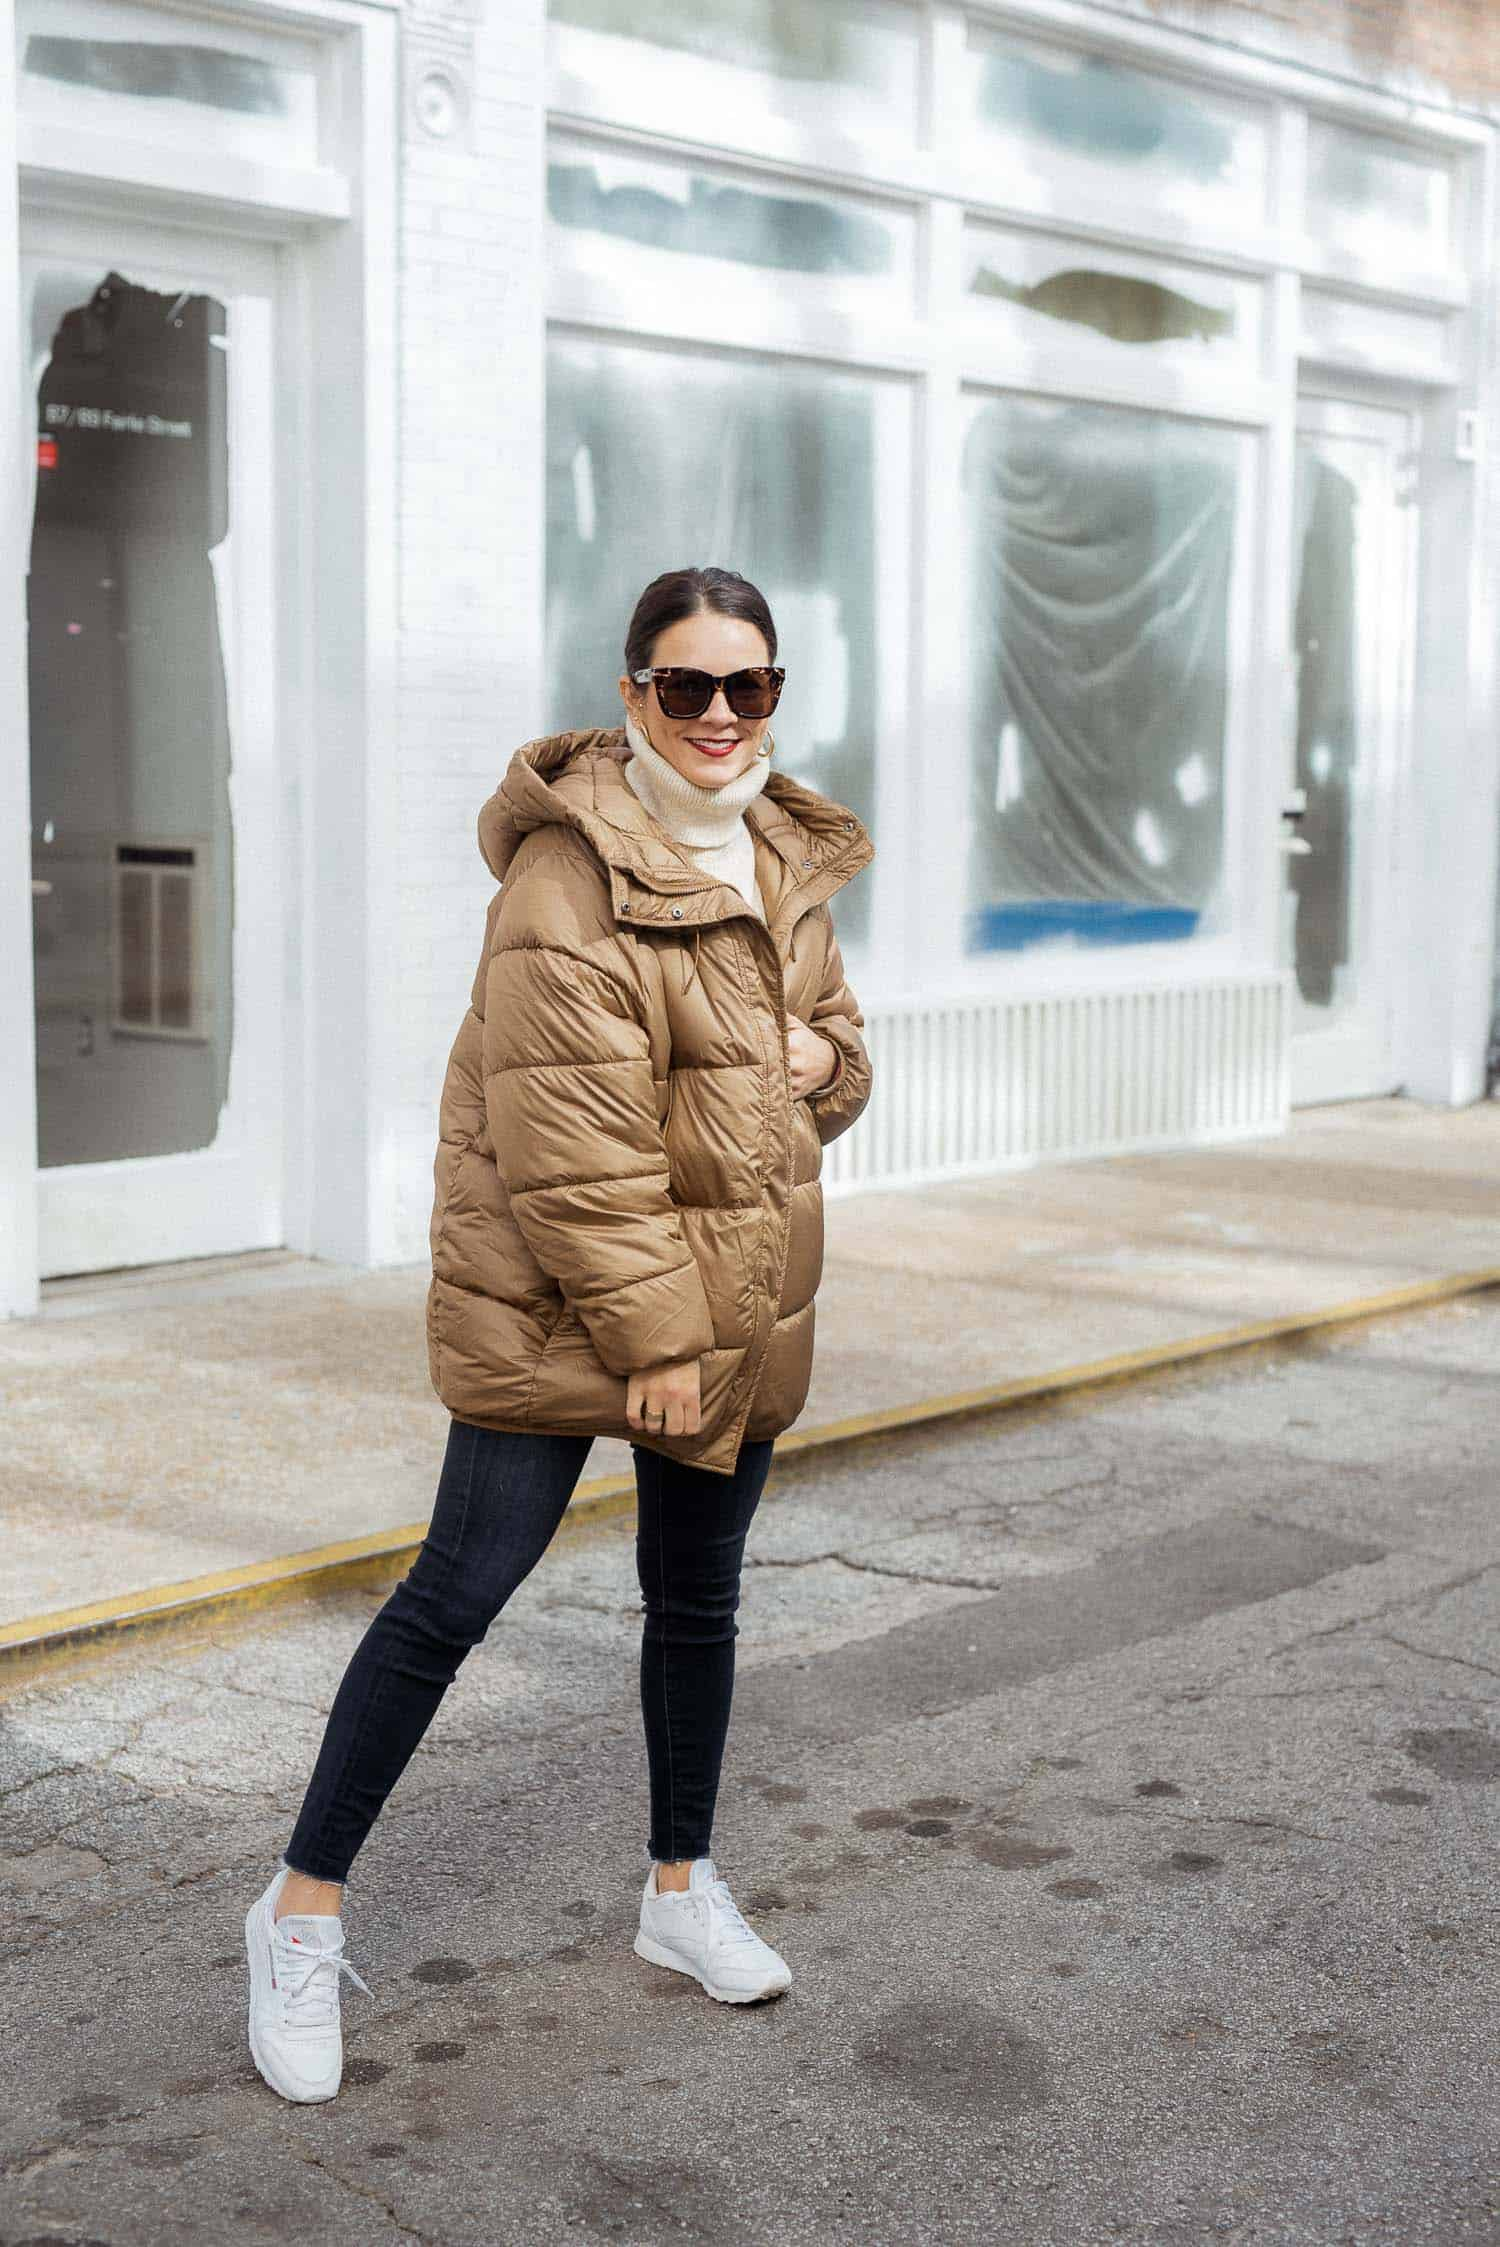 Jessica of My Style Vita wearing a stylish puffy coat and a pair of white Reeboks.